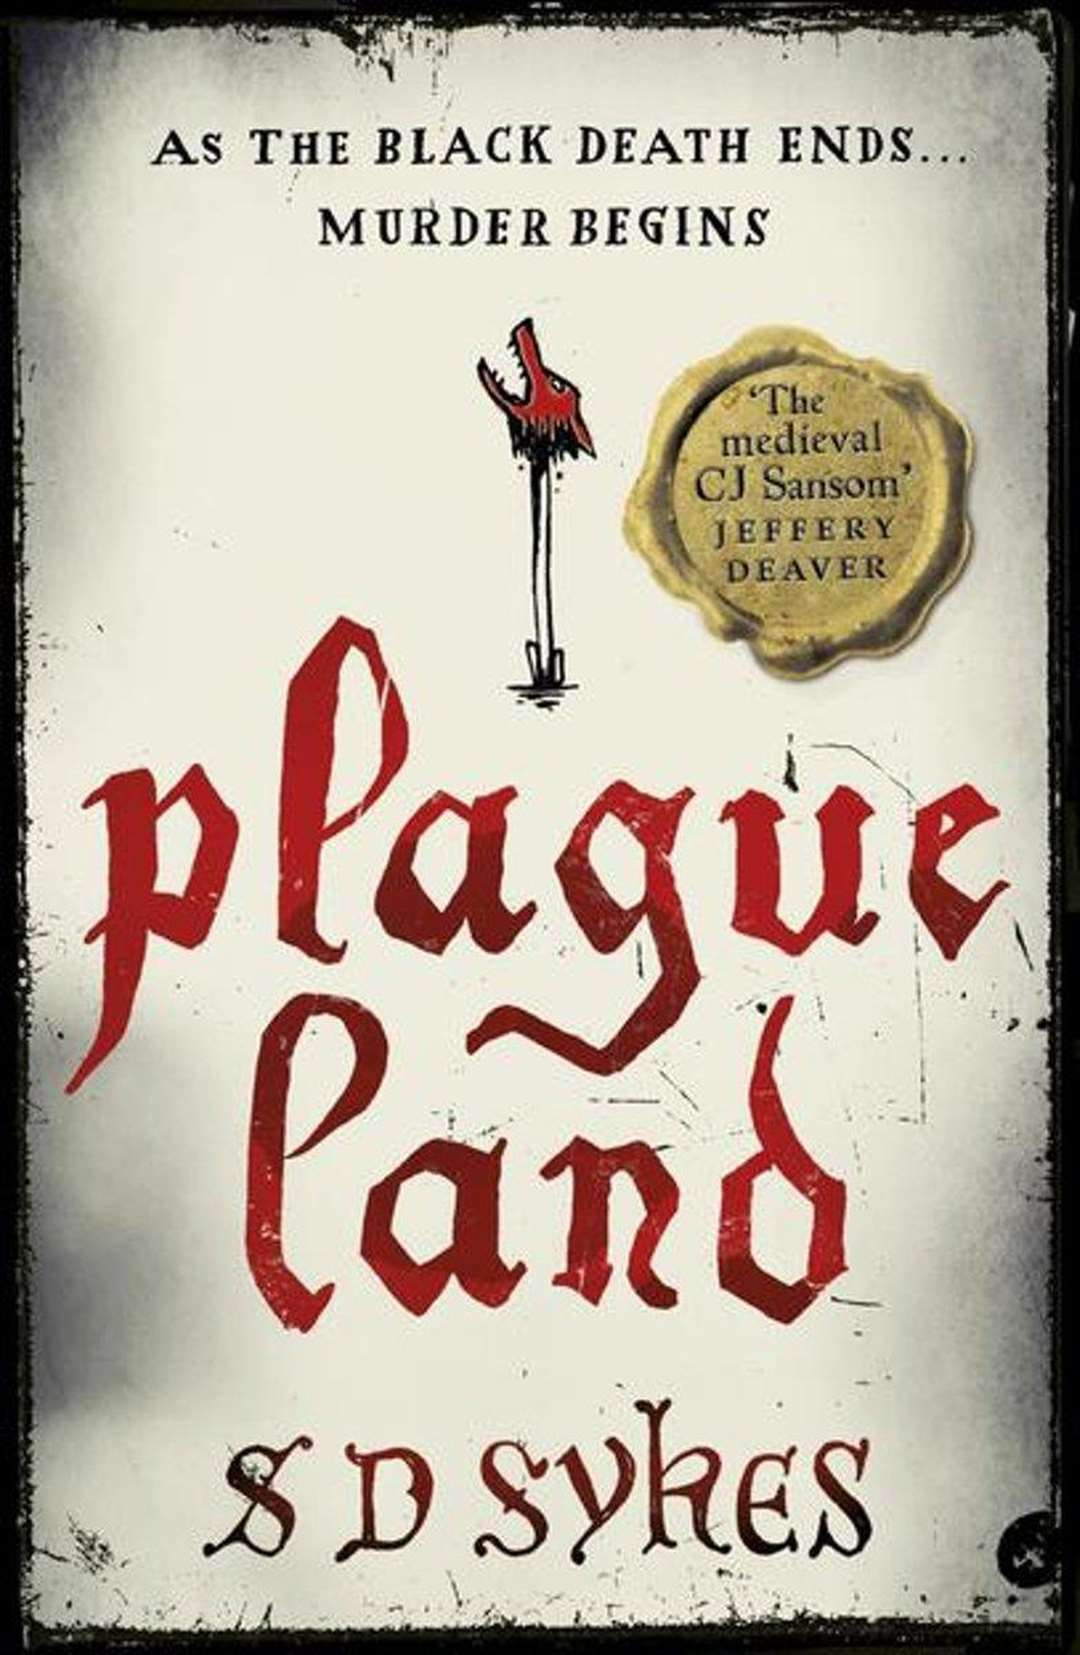 Plague Land by SD Sykes